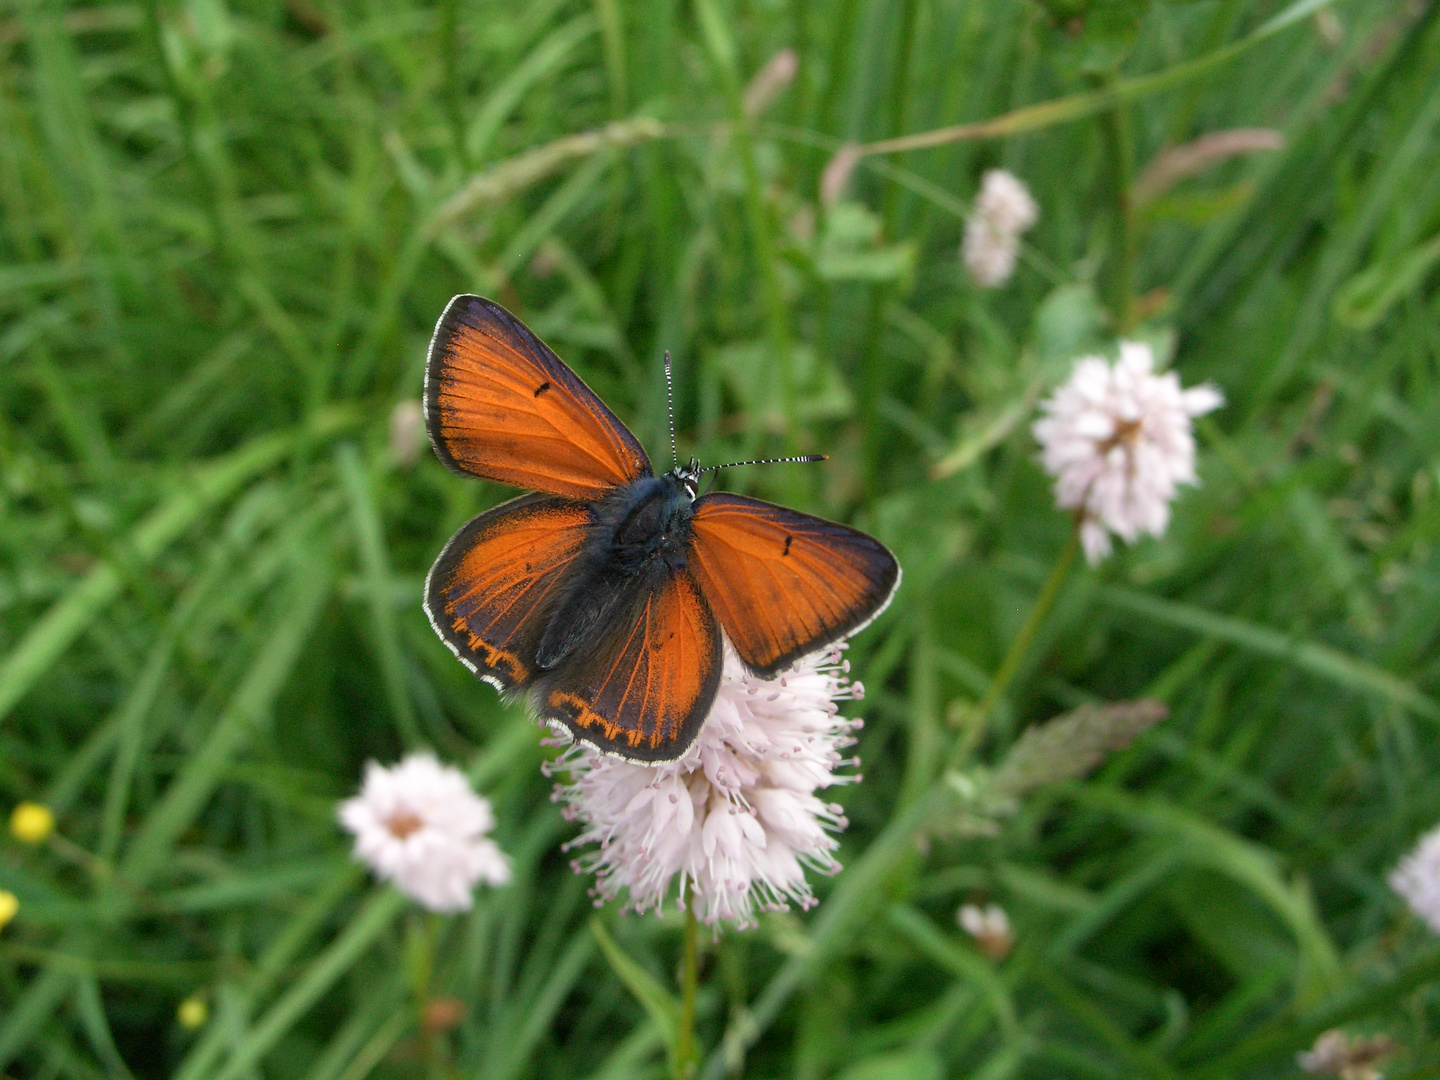 Lilagold-Feuerfalter (Lycaena hippothoe)